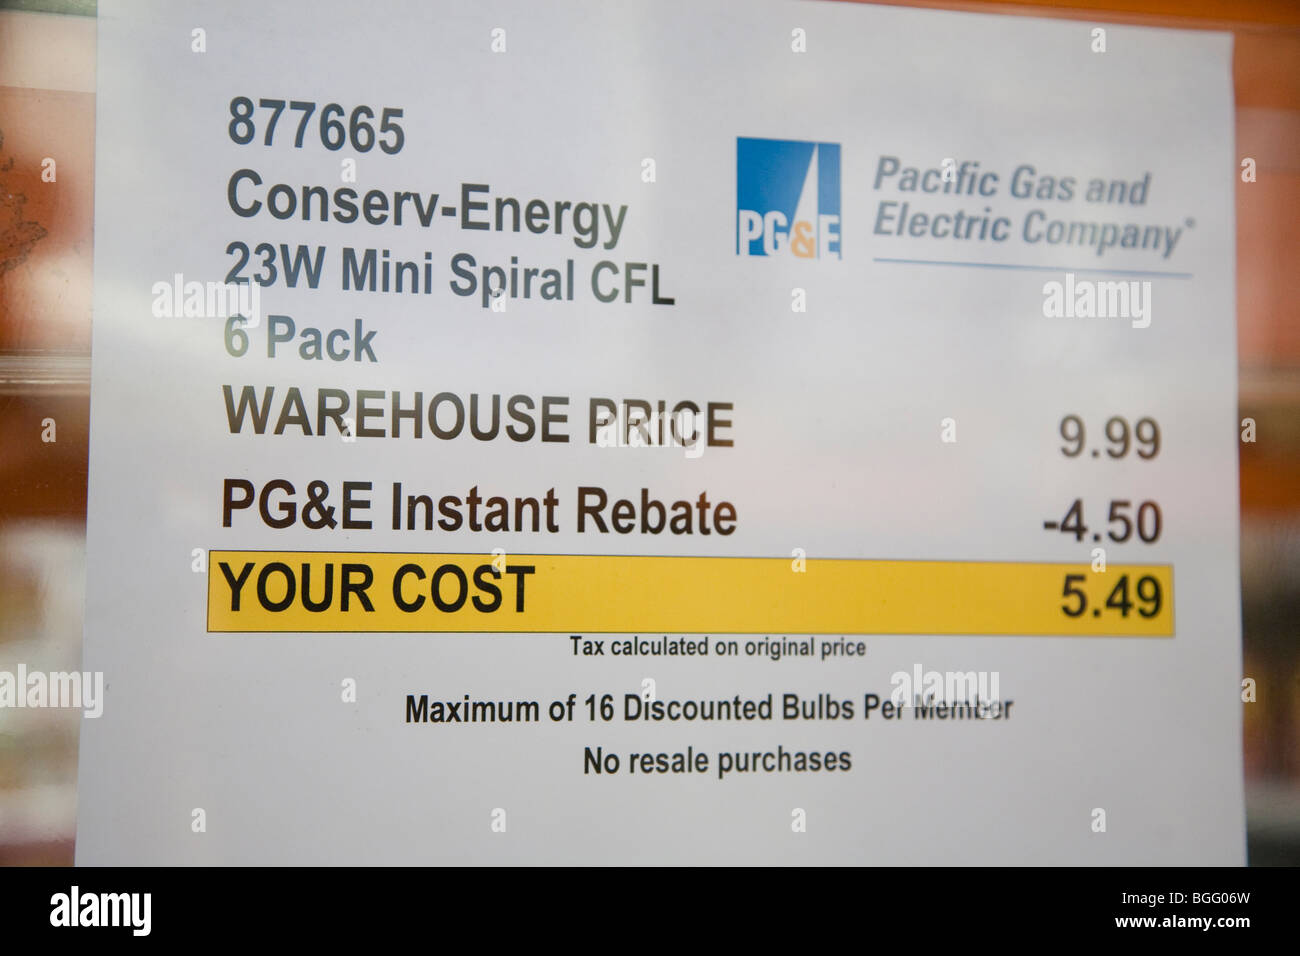 Close Up Of Sign By Pacific Gas And Electric Company (PGu0026E) Who Provides  Instant Rebate On Energy Star Rated LED Light Set Design Ideas